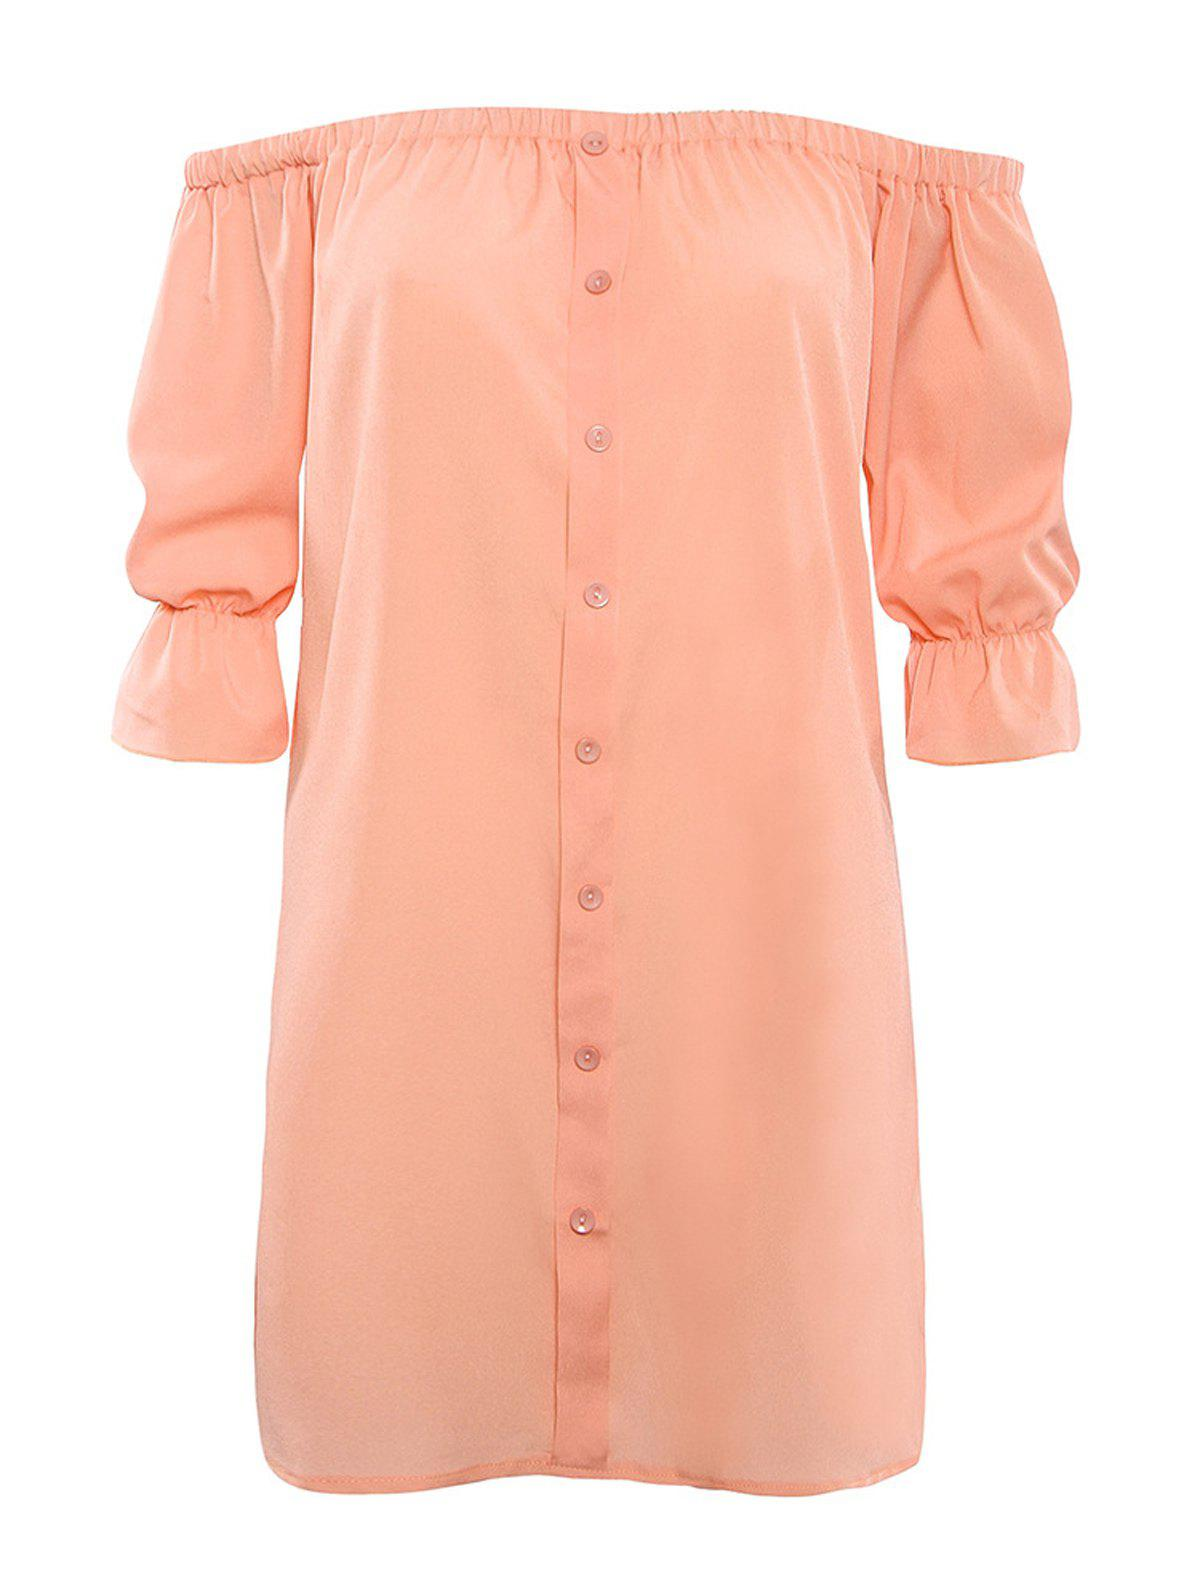 Off The Shoulder Button Design Mini Dress - NUDE PINK XL